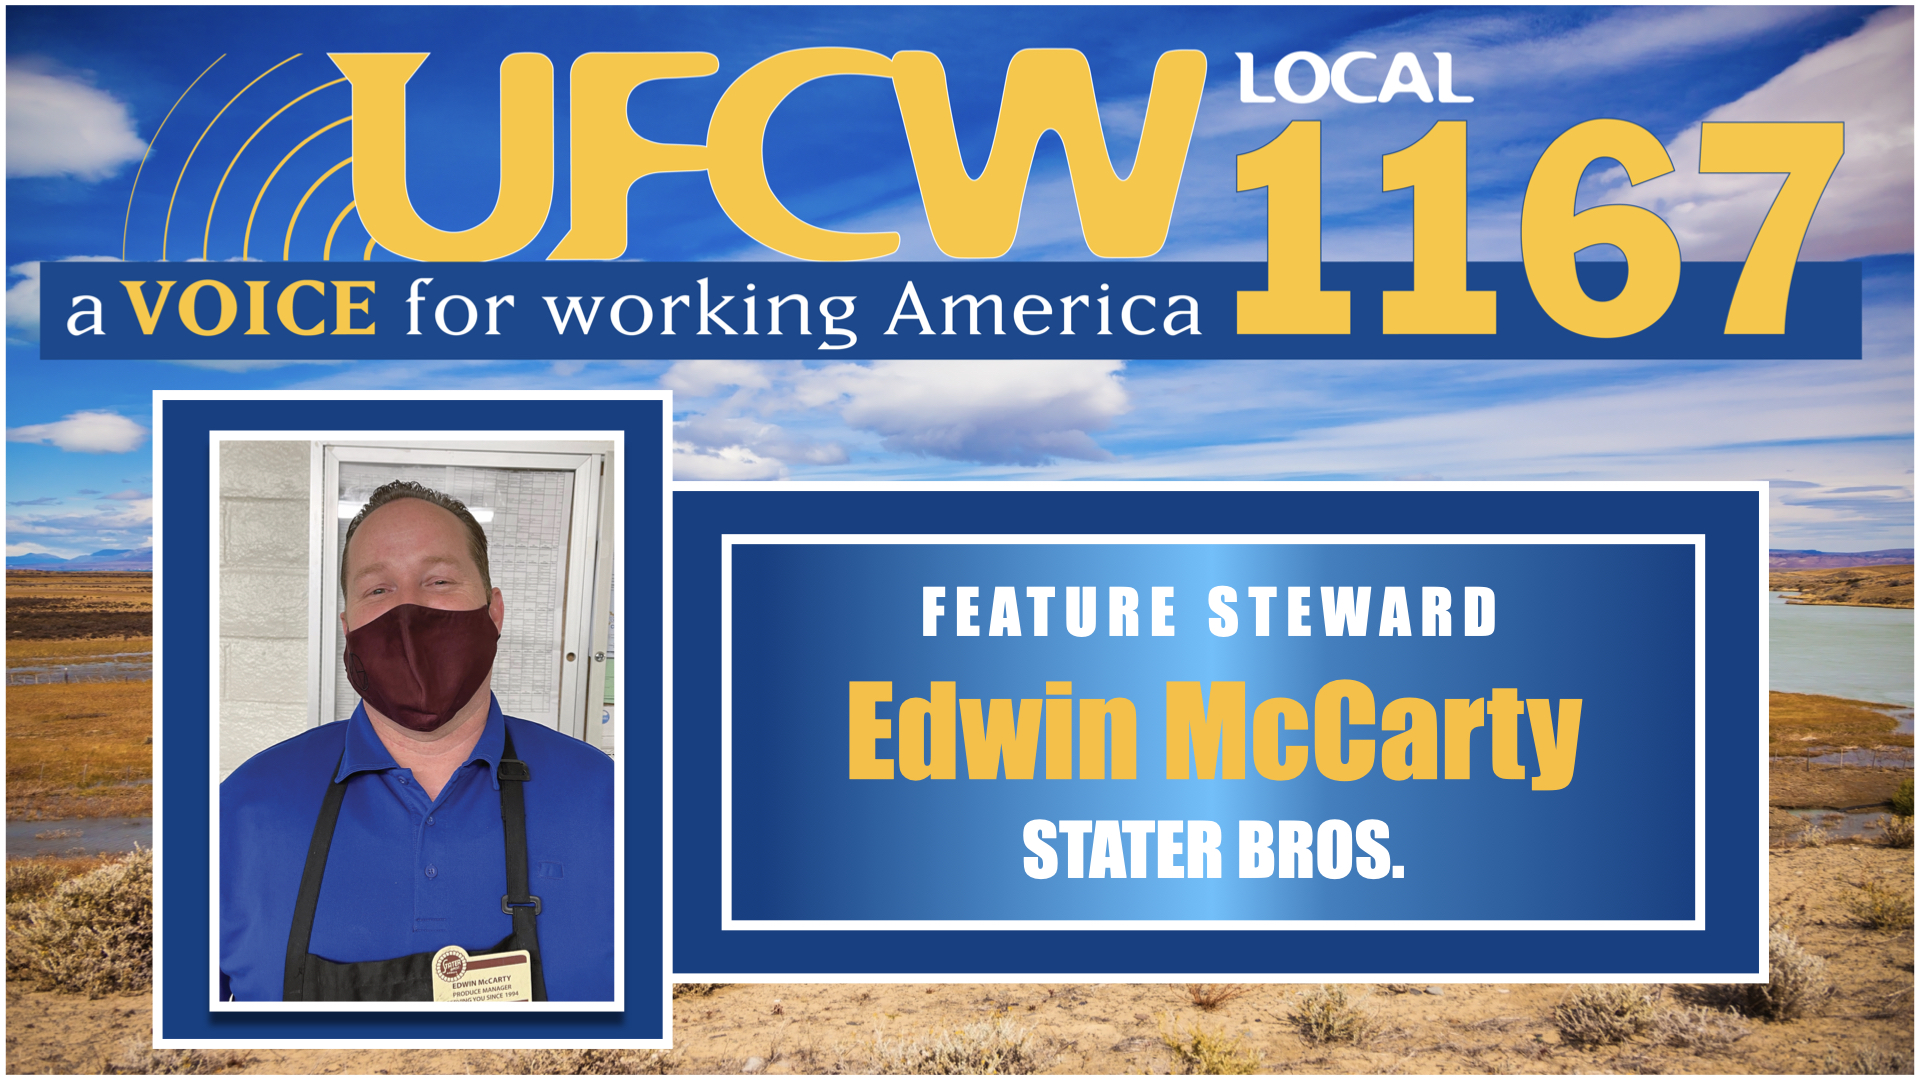 Featured Steward